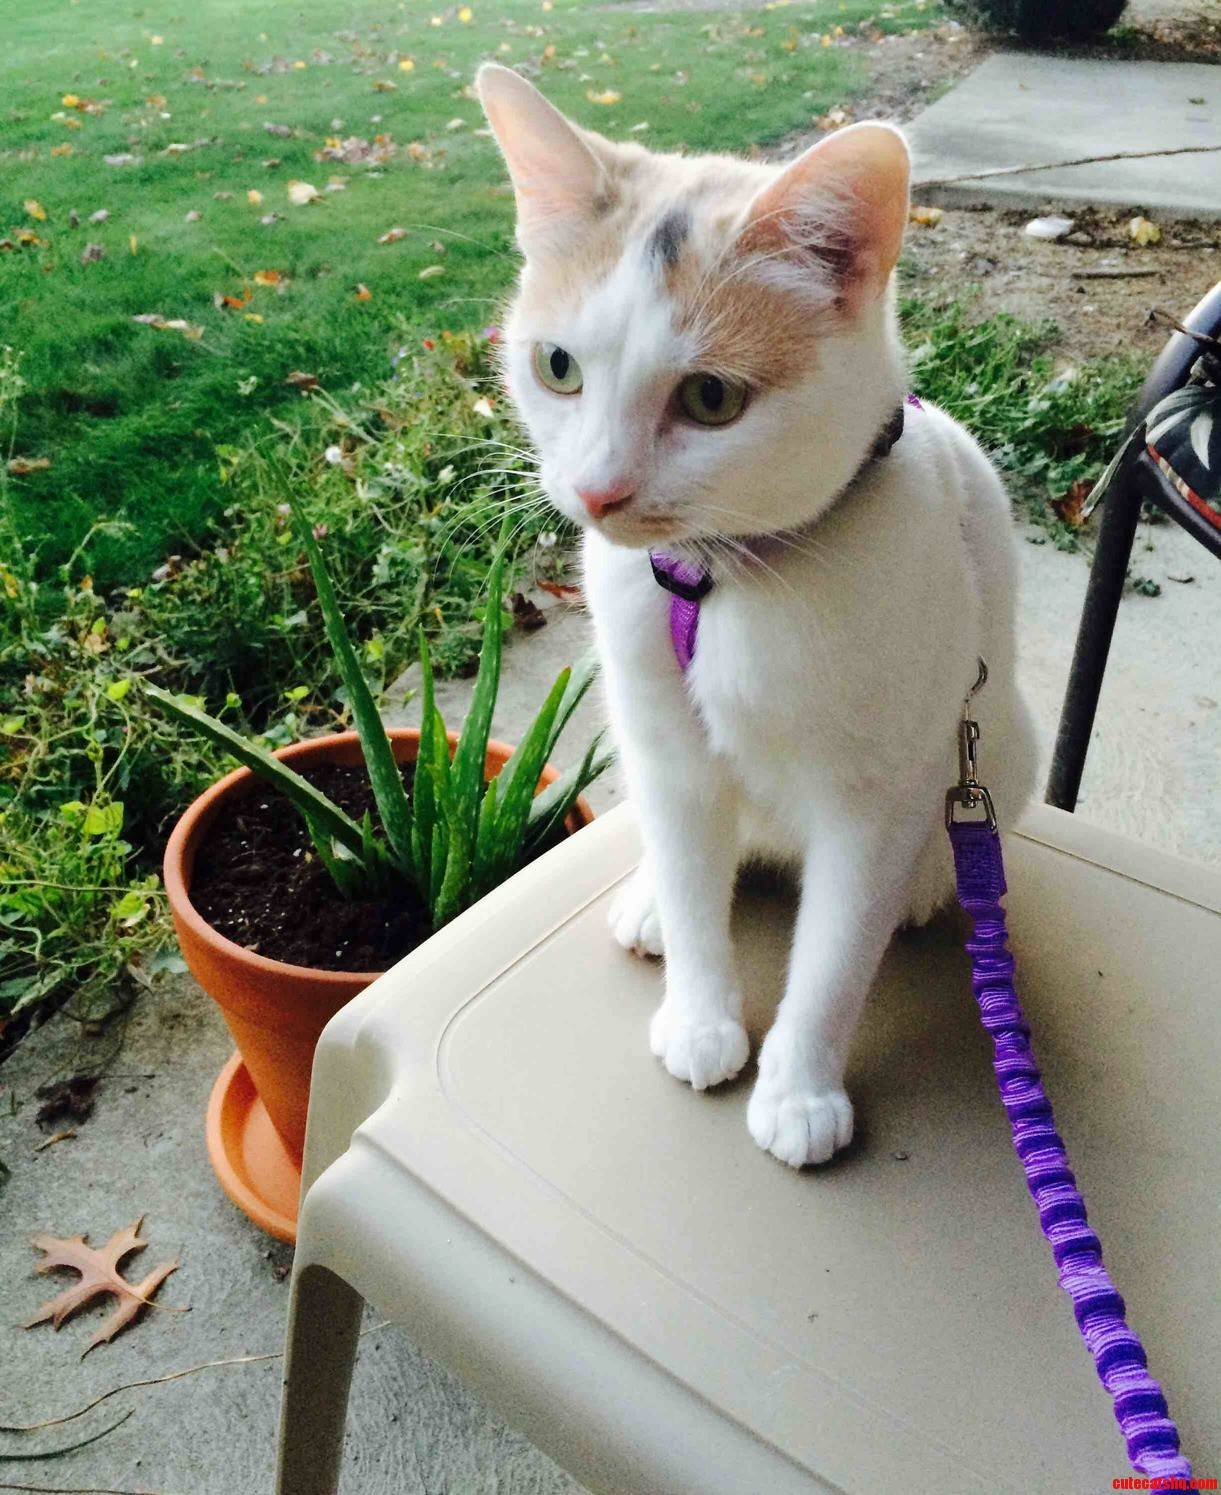 Took my kitty on her first walk today